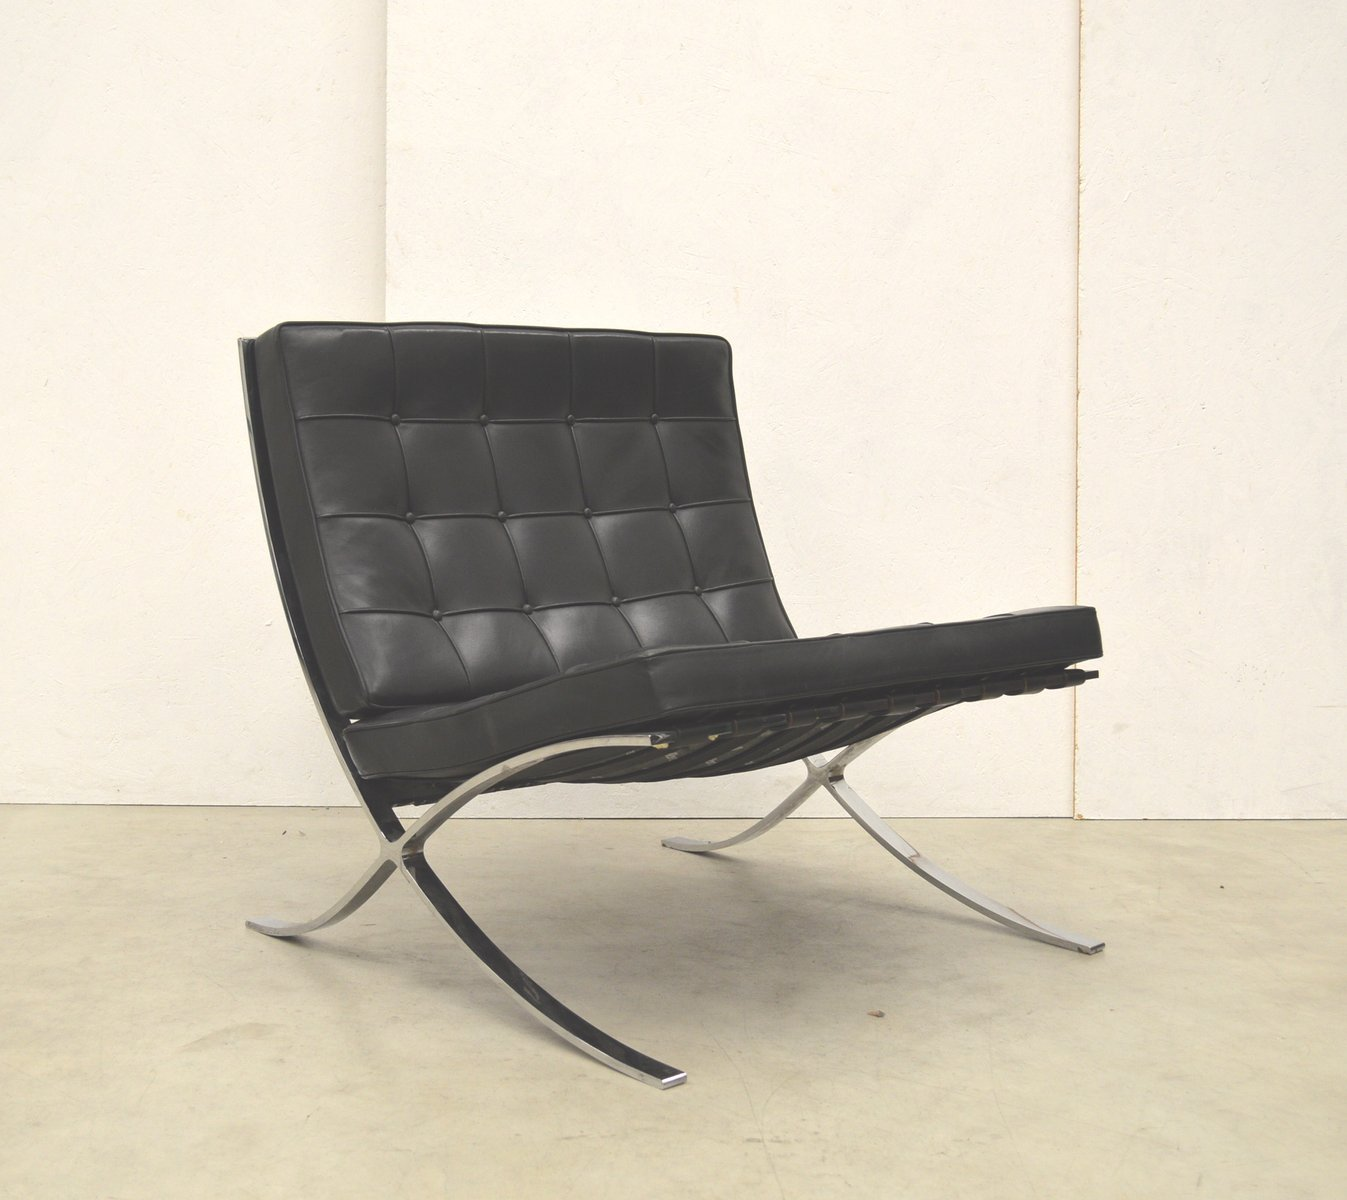 Vintage barcelona chair by mies van der rohe for knoll - Mobles vintage barcelona ...